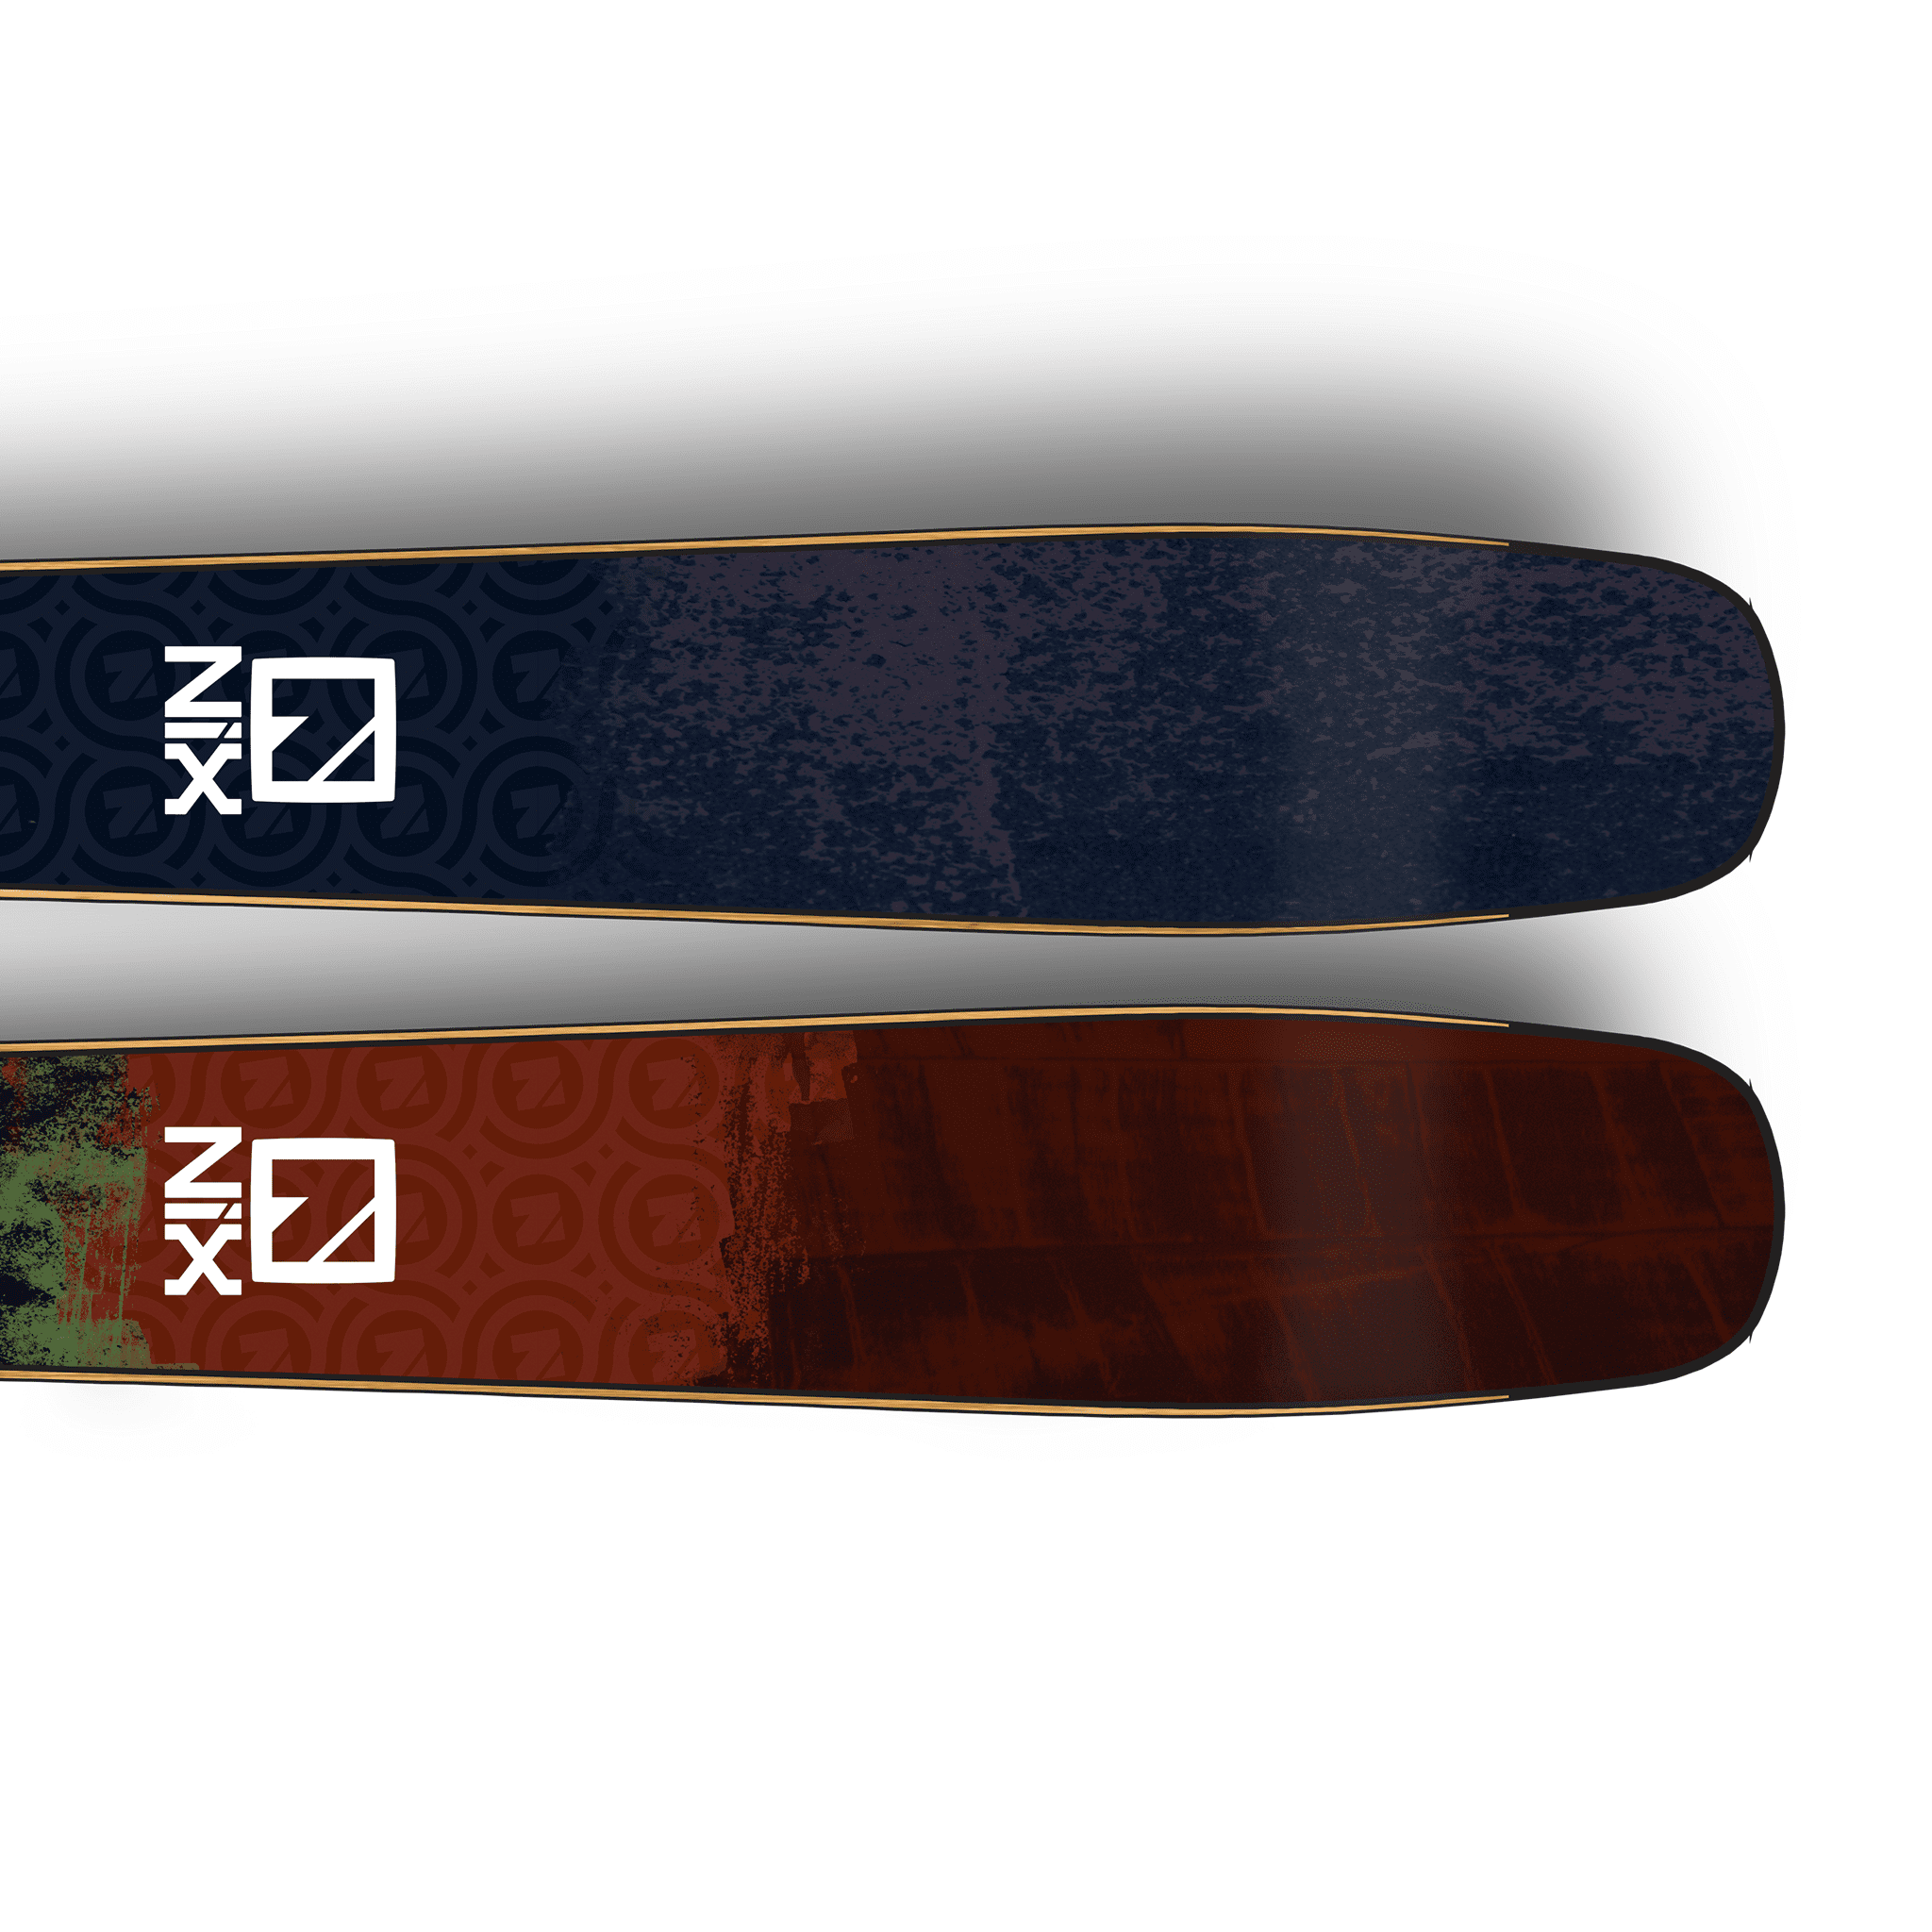 Nix Snowsport Co. Maverick 98 - Made To Measure Ski's